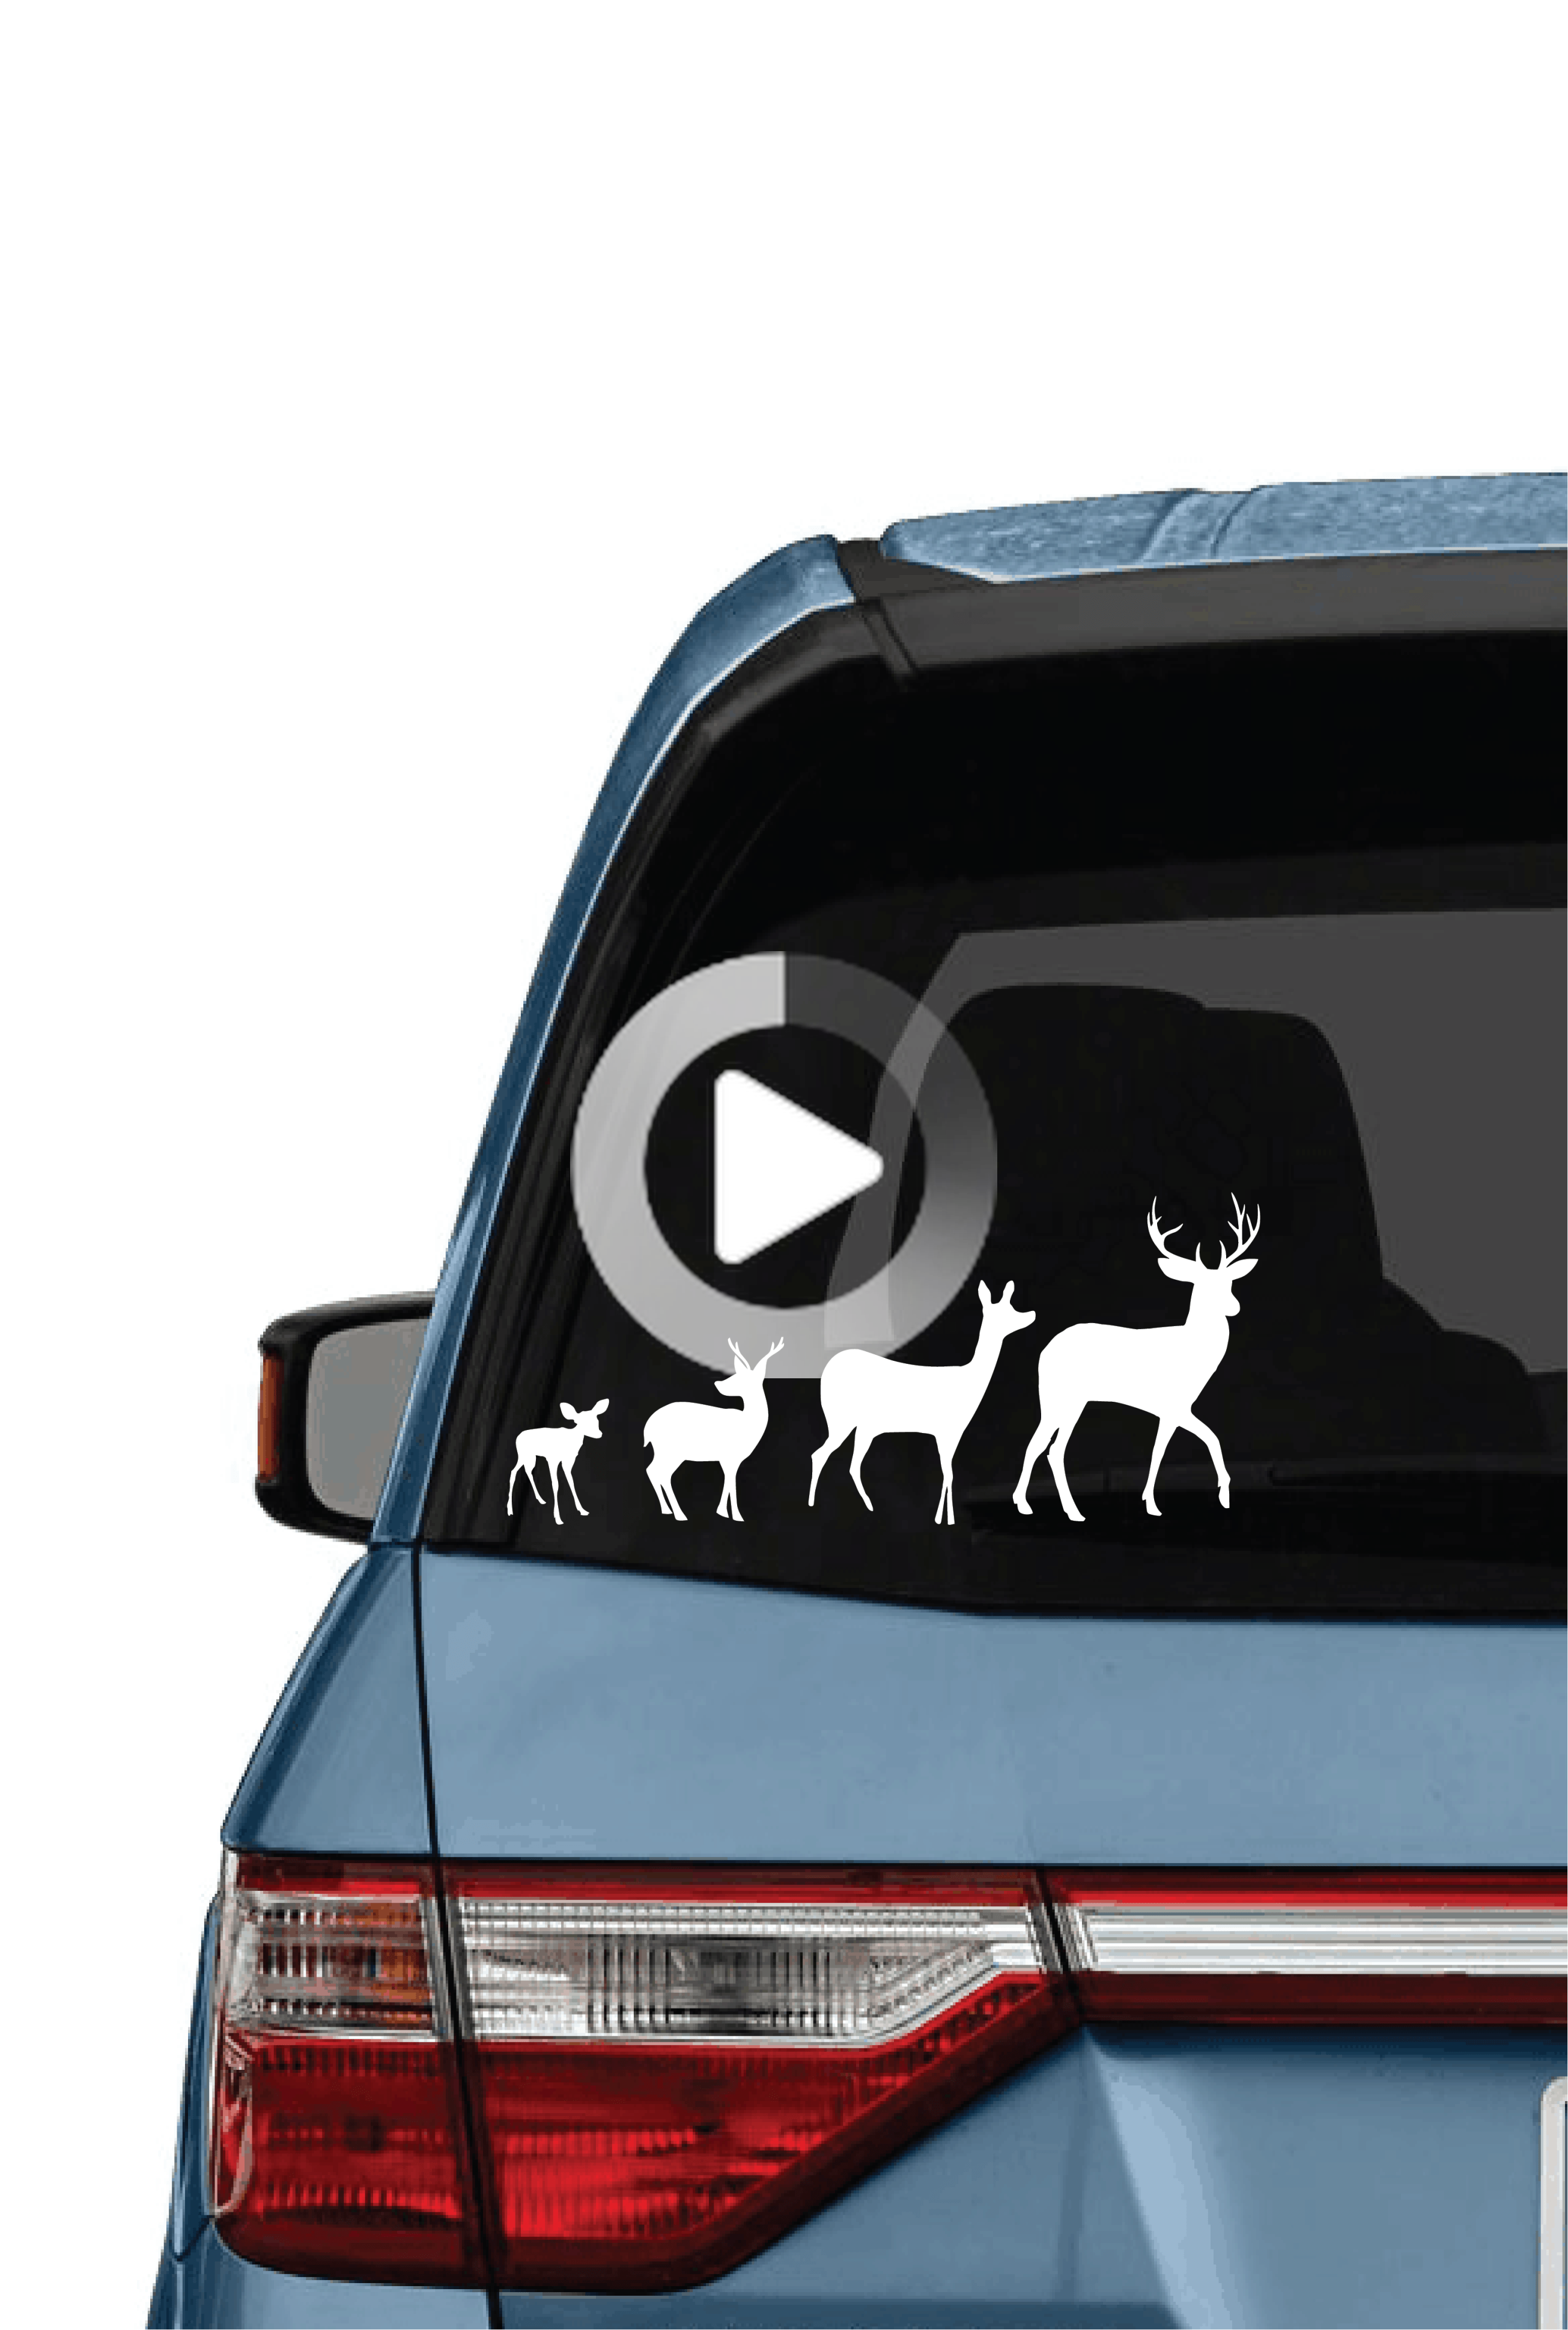 How To Make Decals For Cars Car Car Decals Vinyl Car Decals Stickers [ 3878 x 2610 Pixel ]